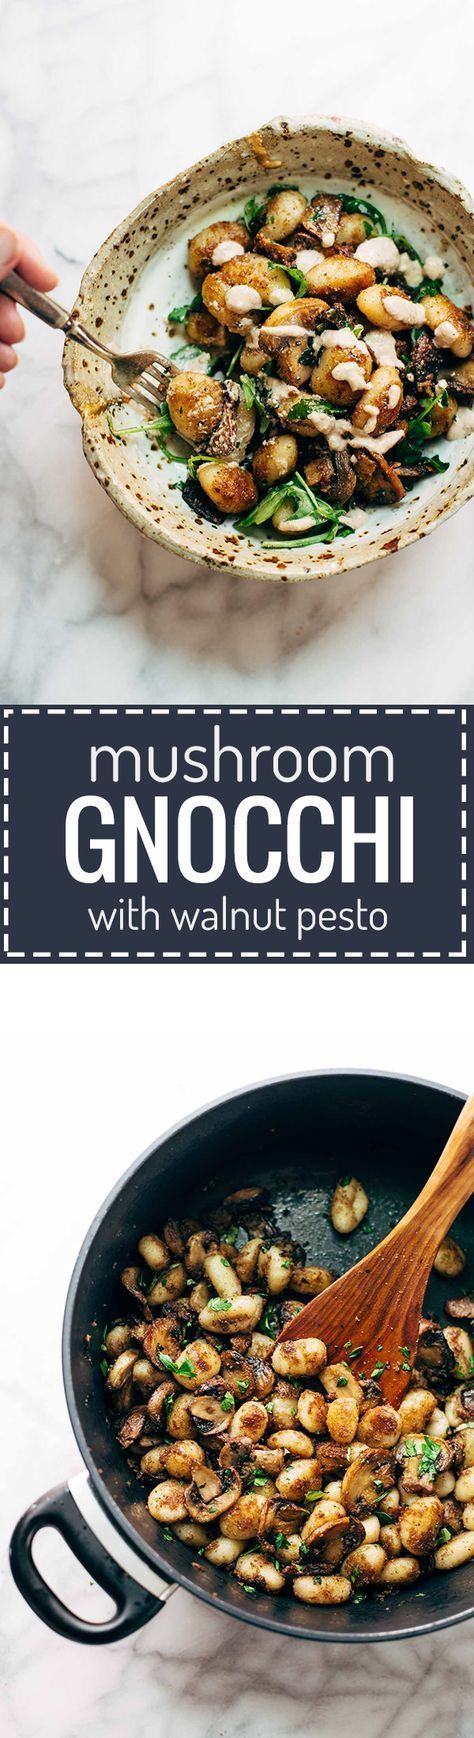 Mushroom Gnocchi with Walnut Pesto and Arugula - a rustic vegetarian recipe made with easy ingredients like Parmesan cheese, garlic, olive oil, arugula, mushrooms, and DeLallo potato gnocchi. Comes together in 30 minutes or less! ♡ | http://pinchofyum.com